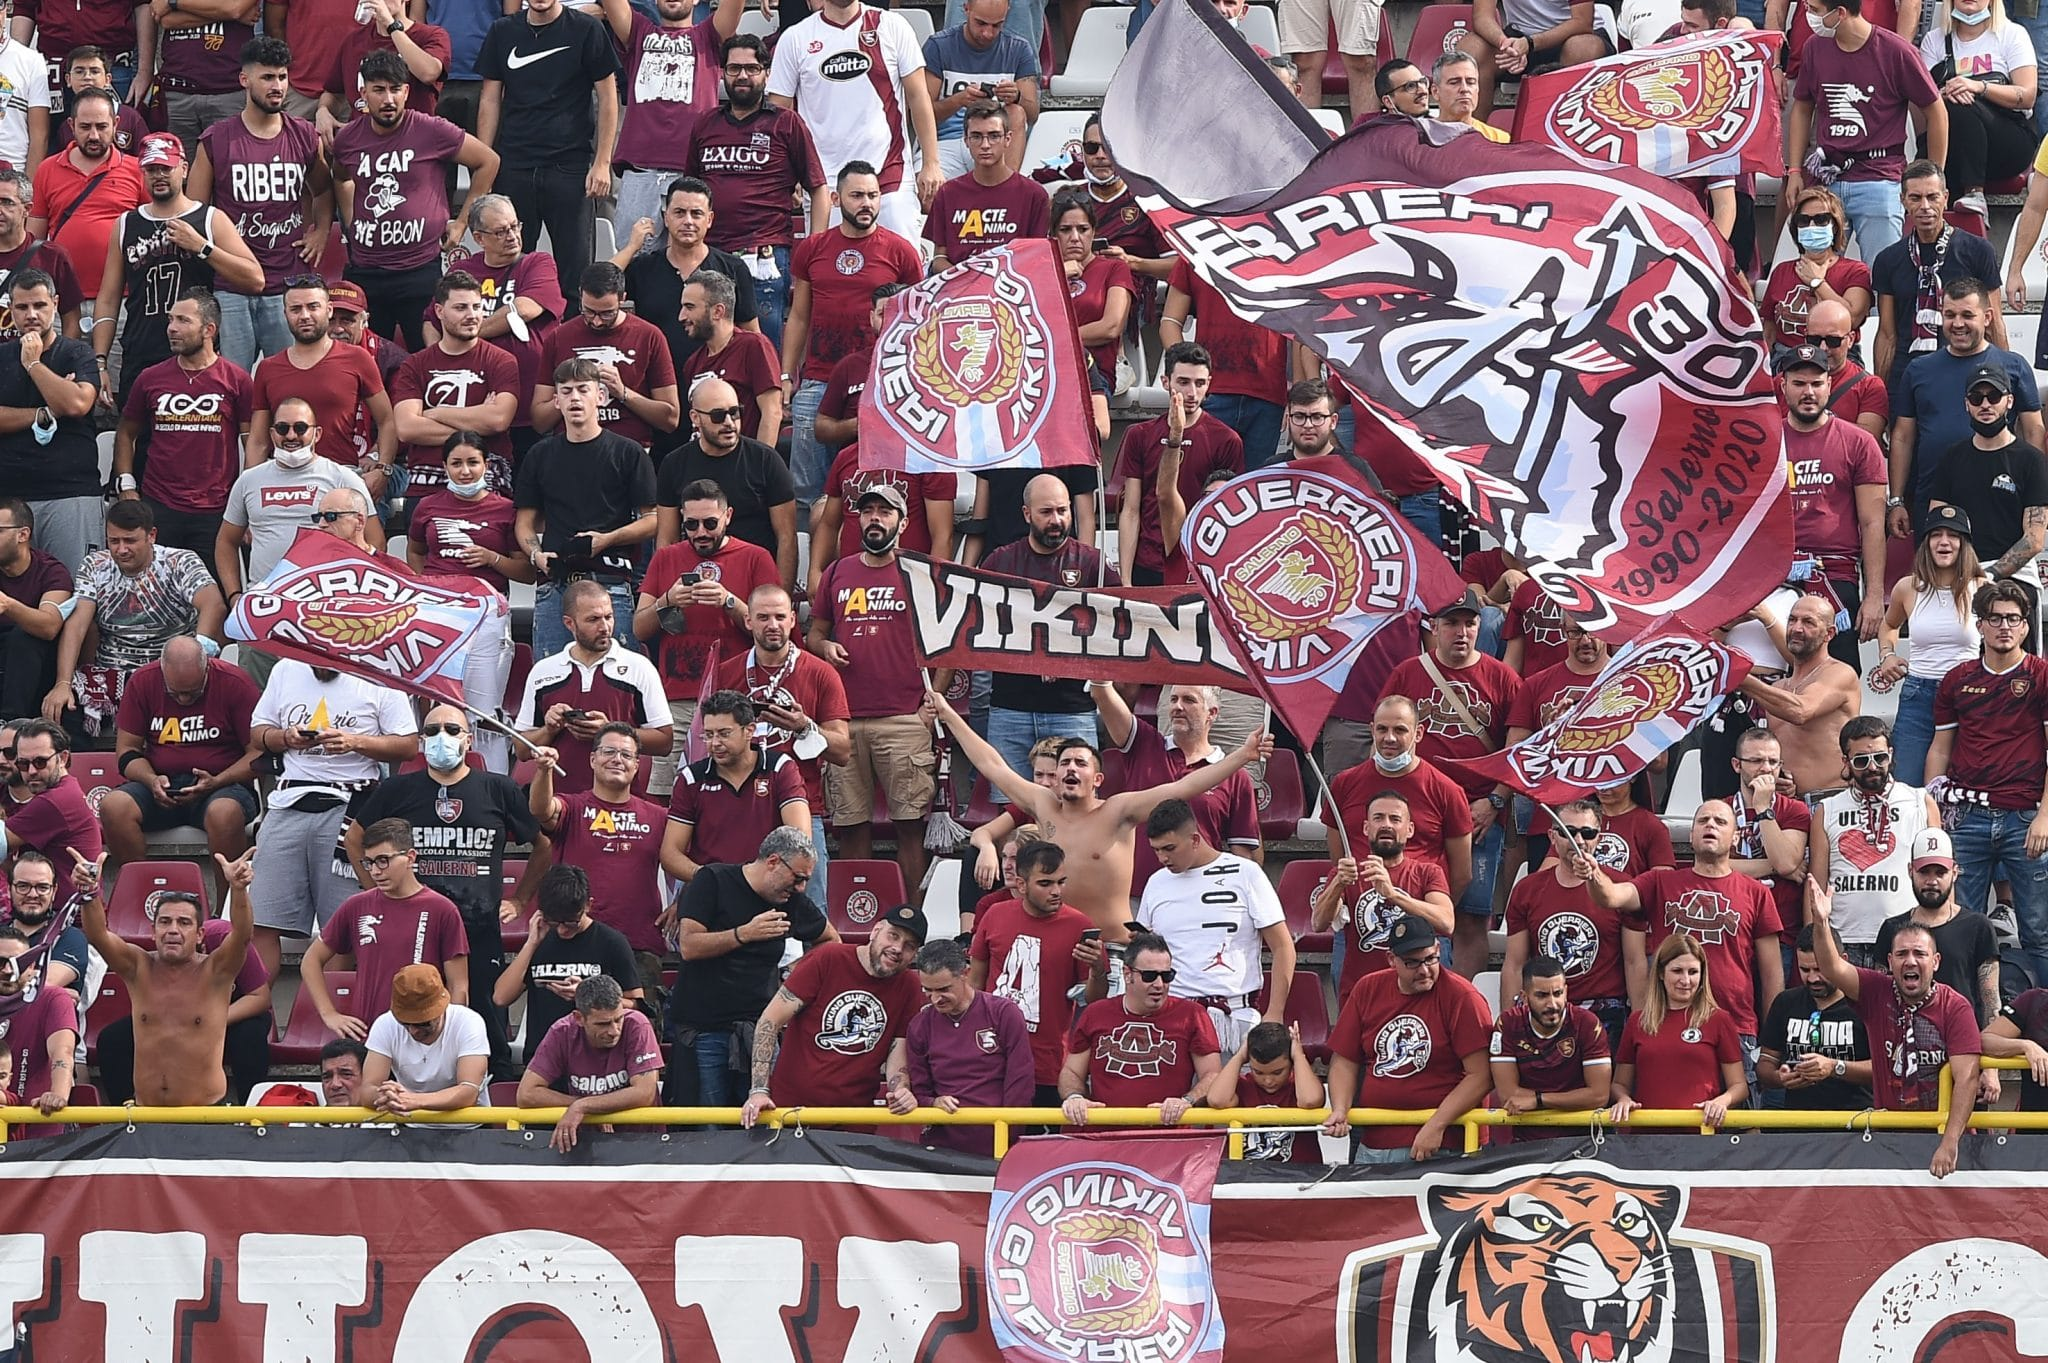 Supporters of US Salernitana 1919 on the stands during the Serie A match between US Salernitana 1919 and  Genoa CFC at Stadio Arechi, Salerno, Italy on 2 October 2021.  (Photo by Giuseppe Maffia/NurPhoto via Getty Images)